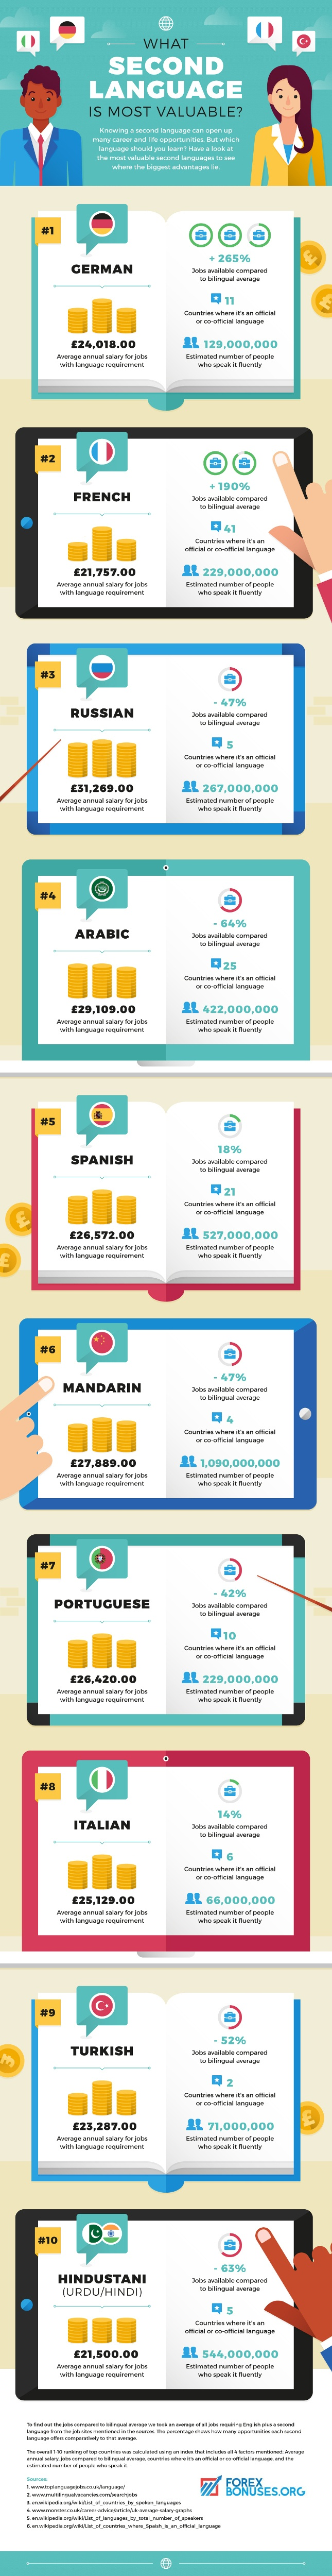 What is the most valuable second language to have in your career search?